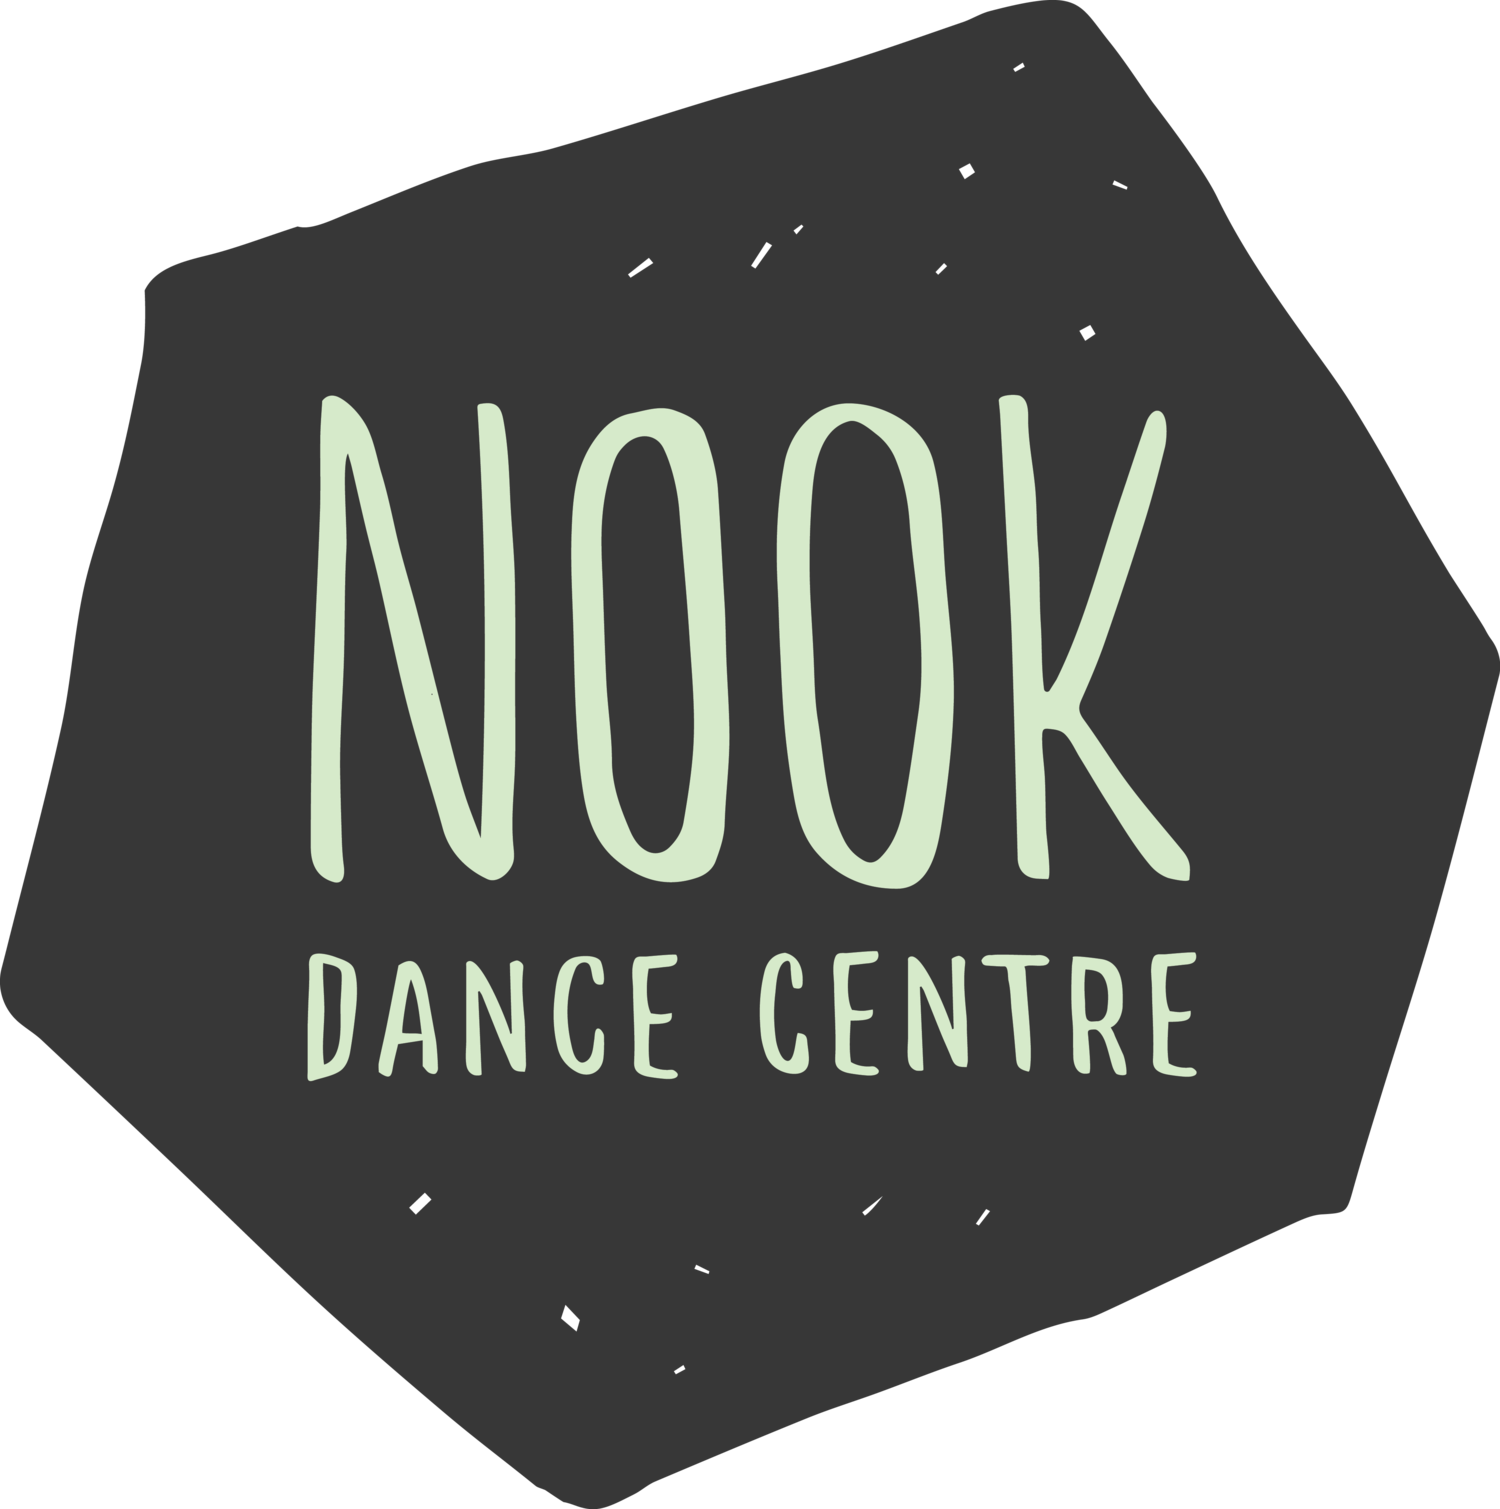 Nook Dance Centre